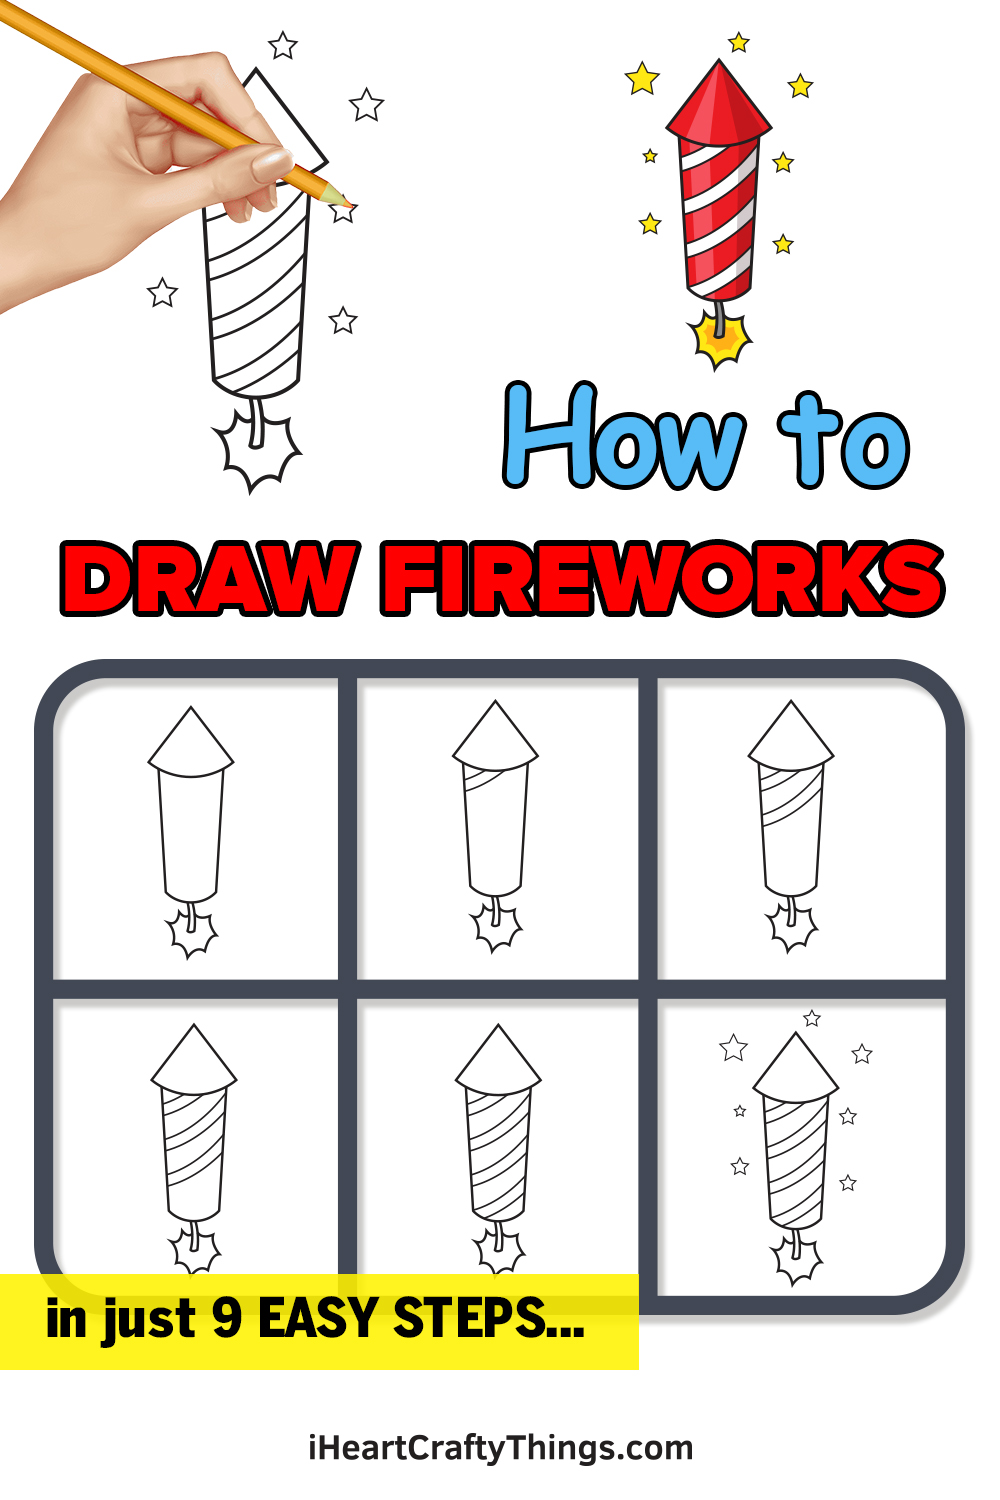 how to draw fireworks in 9 easy steps